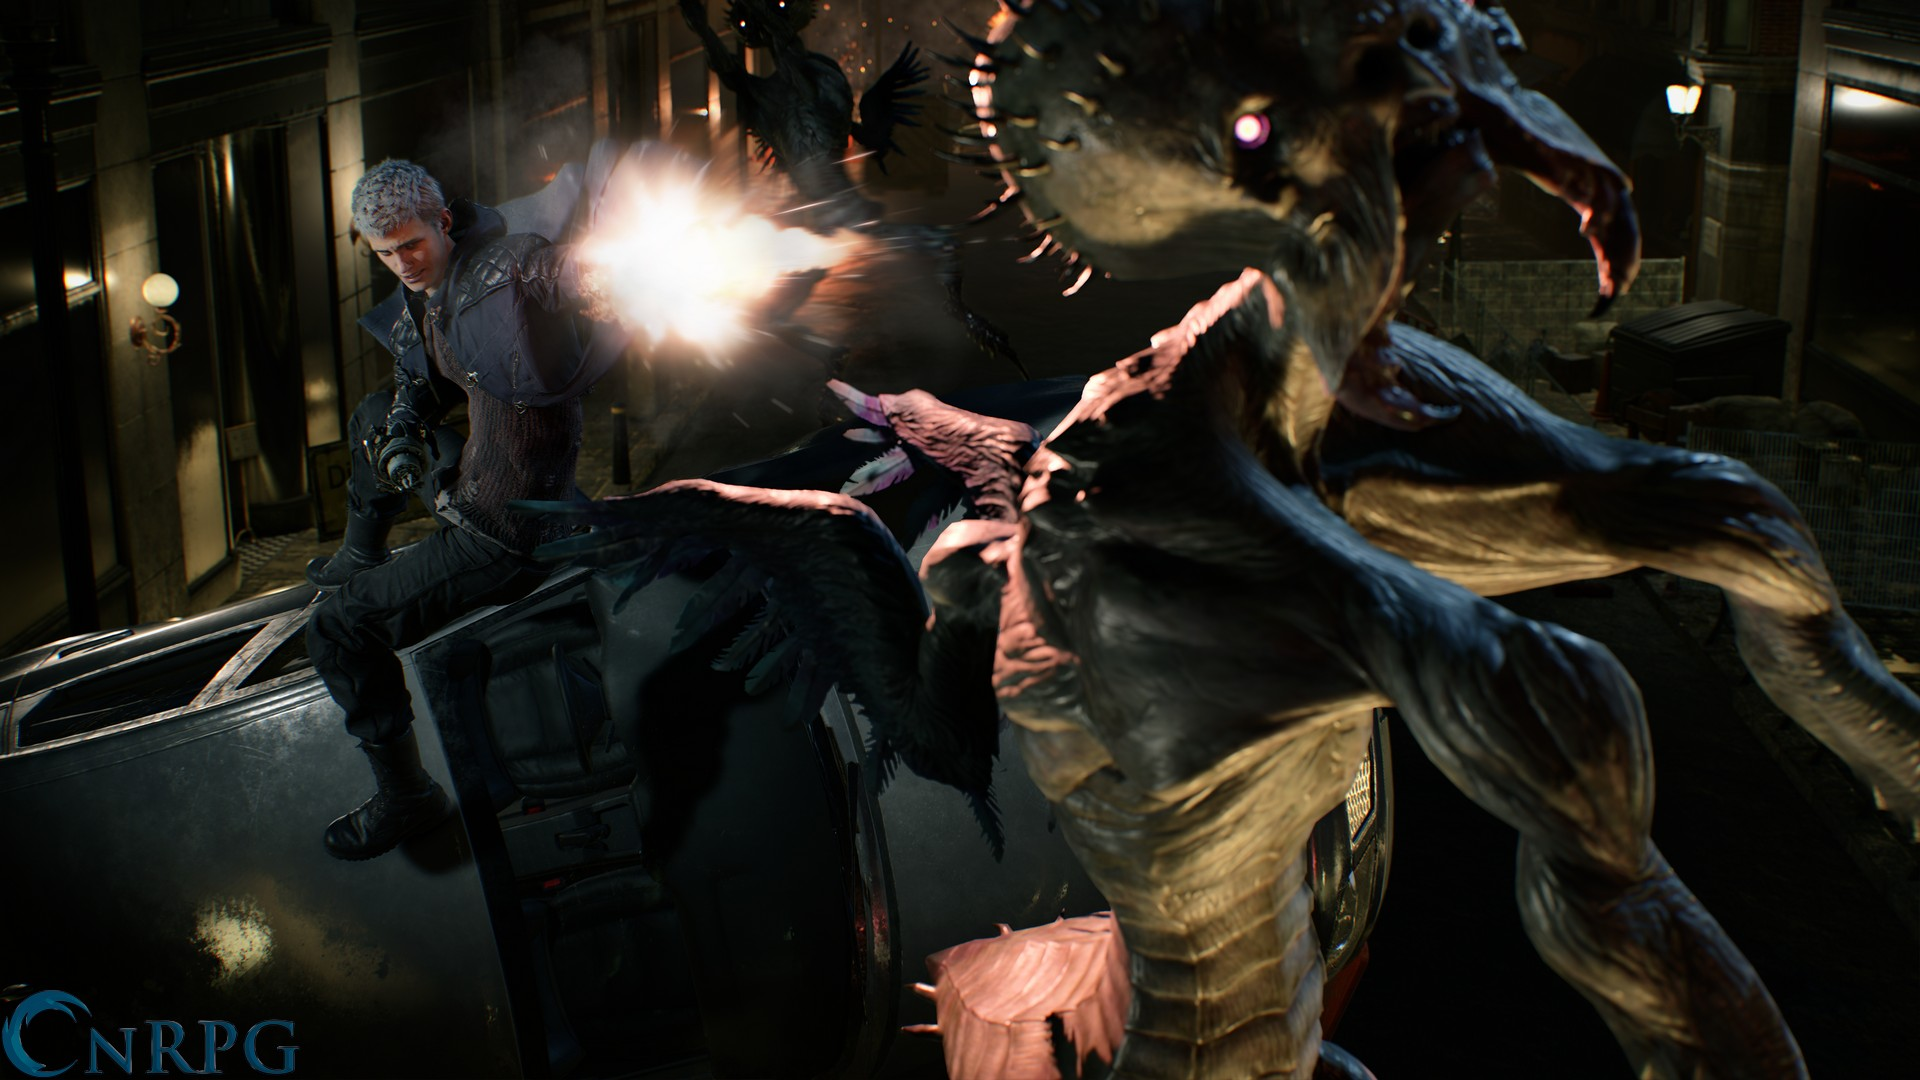 Red Hat Wallpaper Hd Devil May Cry 5 Onrpg